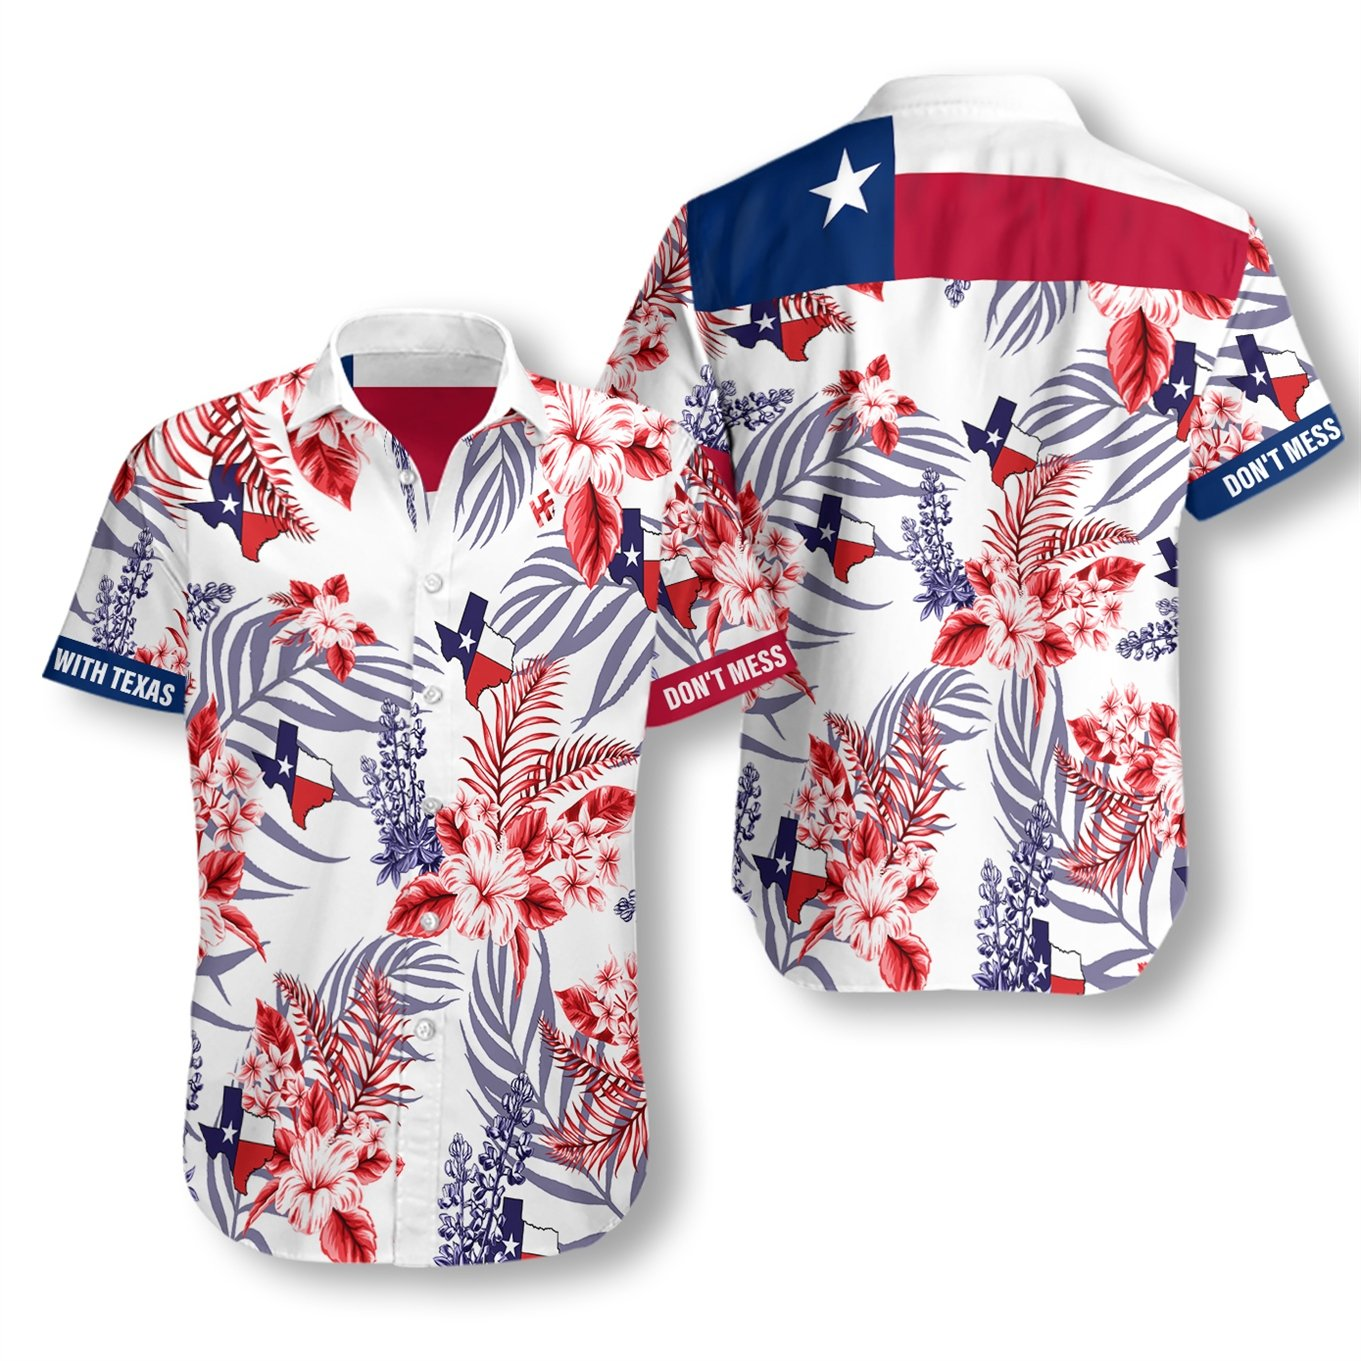 Texas Proud Bluebonnet EZ05 2707 Hawaiian Shirt